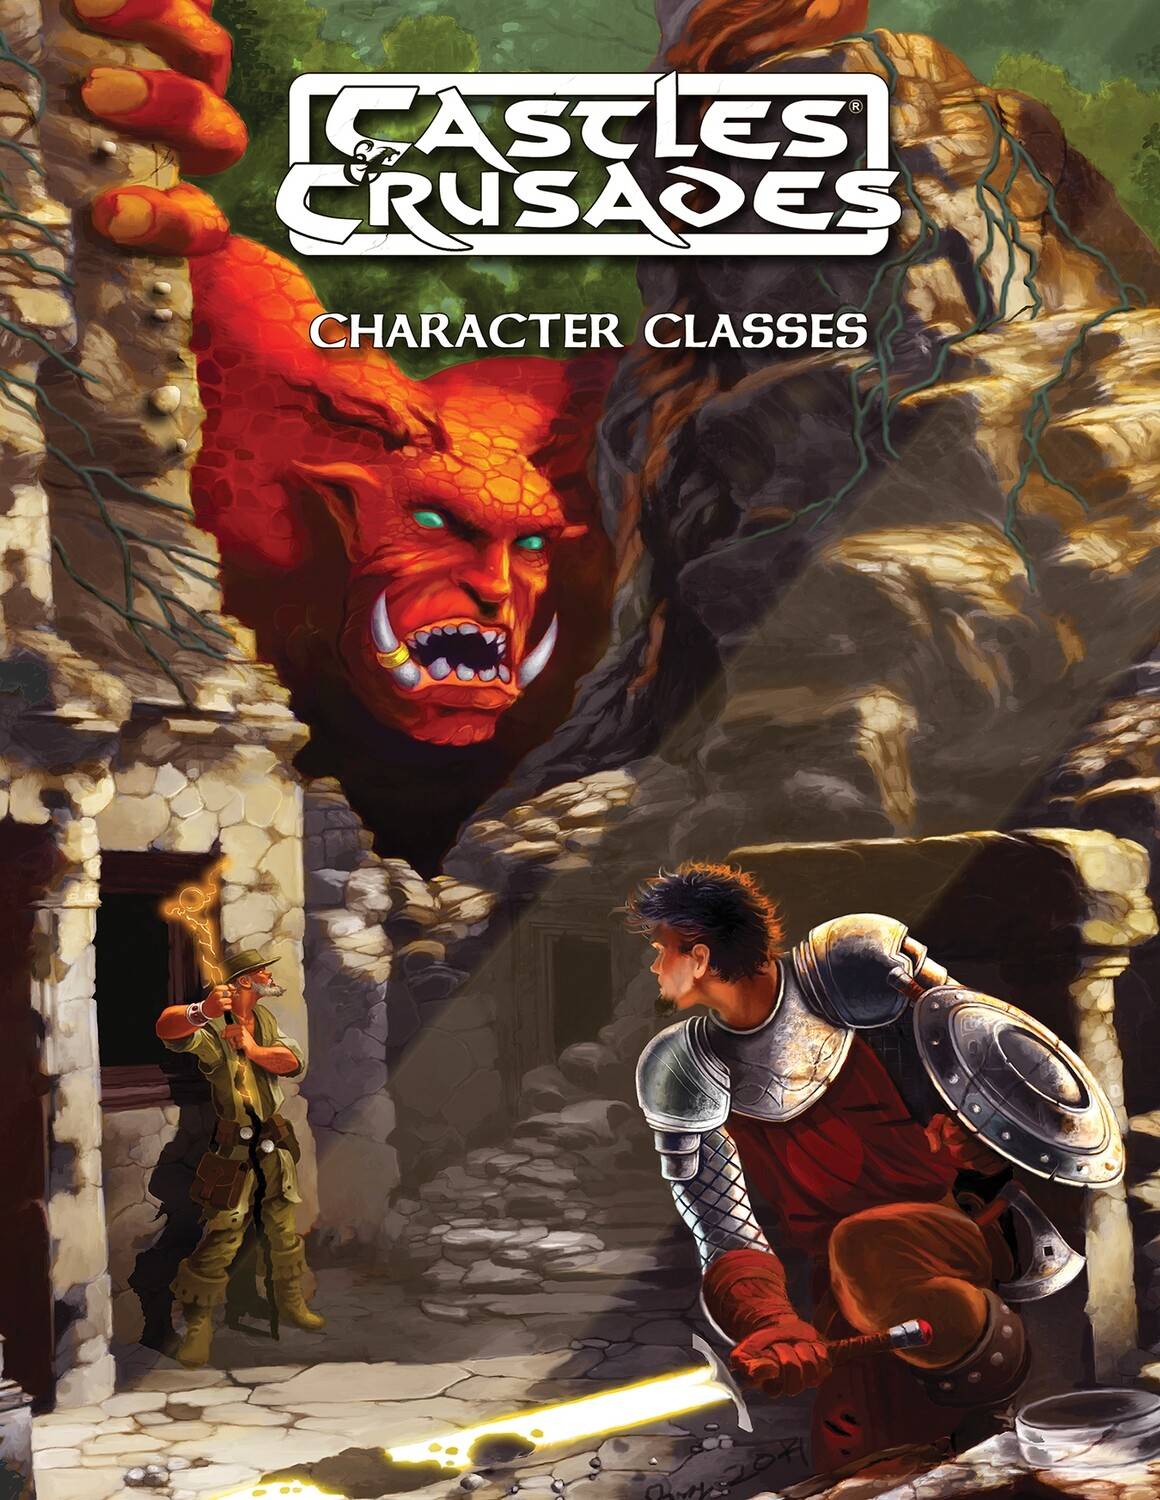 Castles & Crusades Character Classes